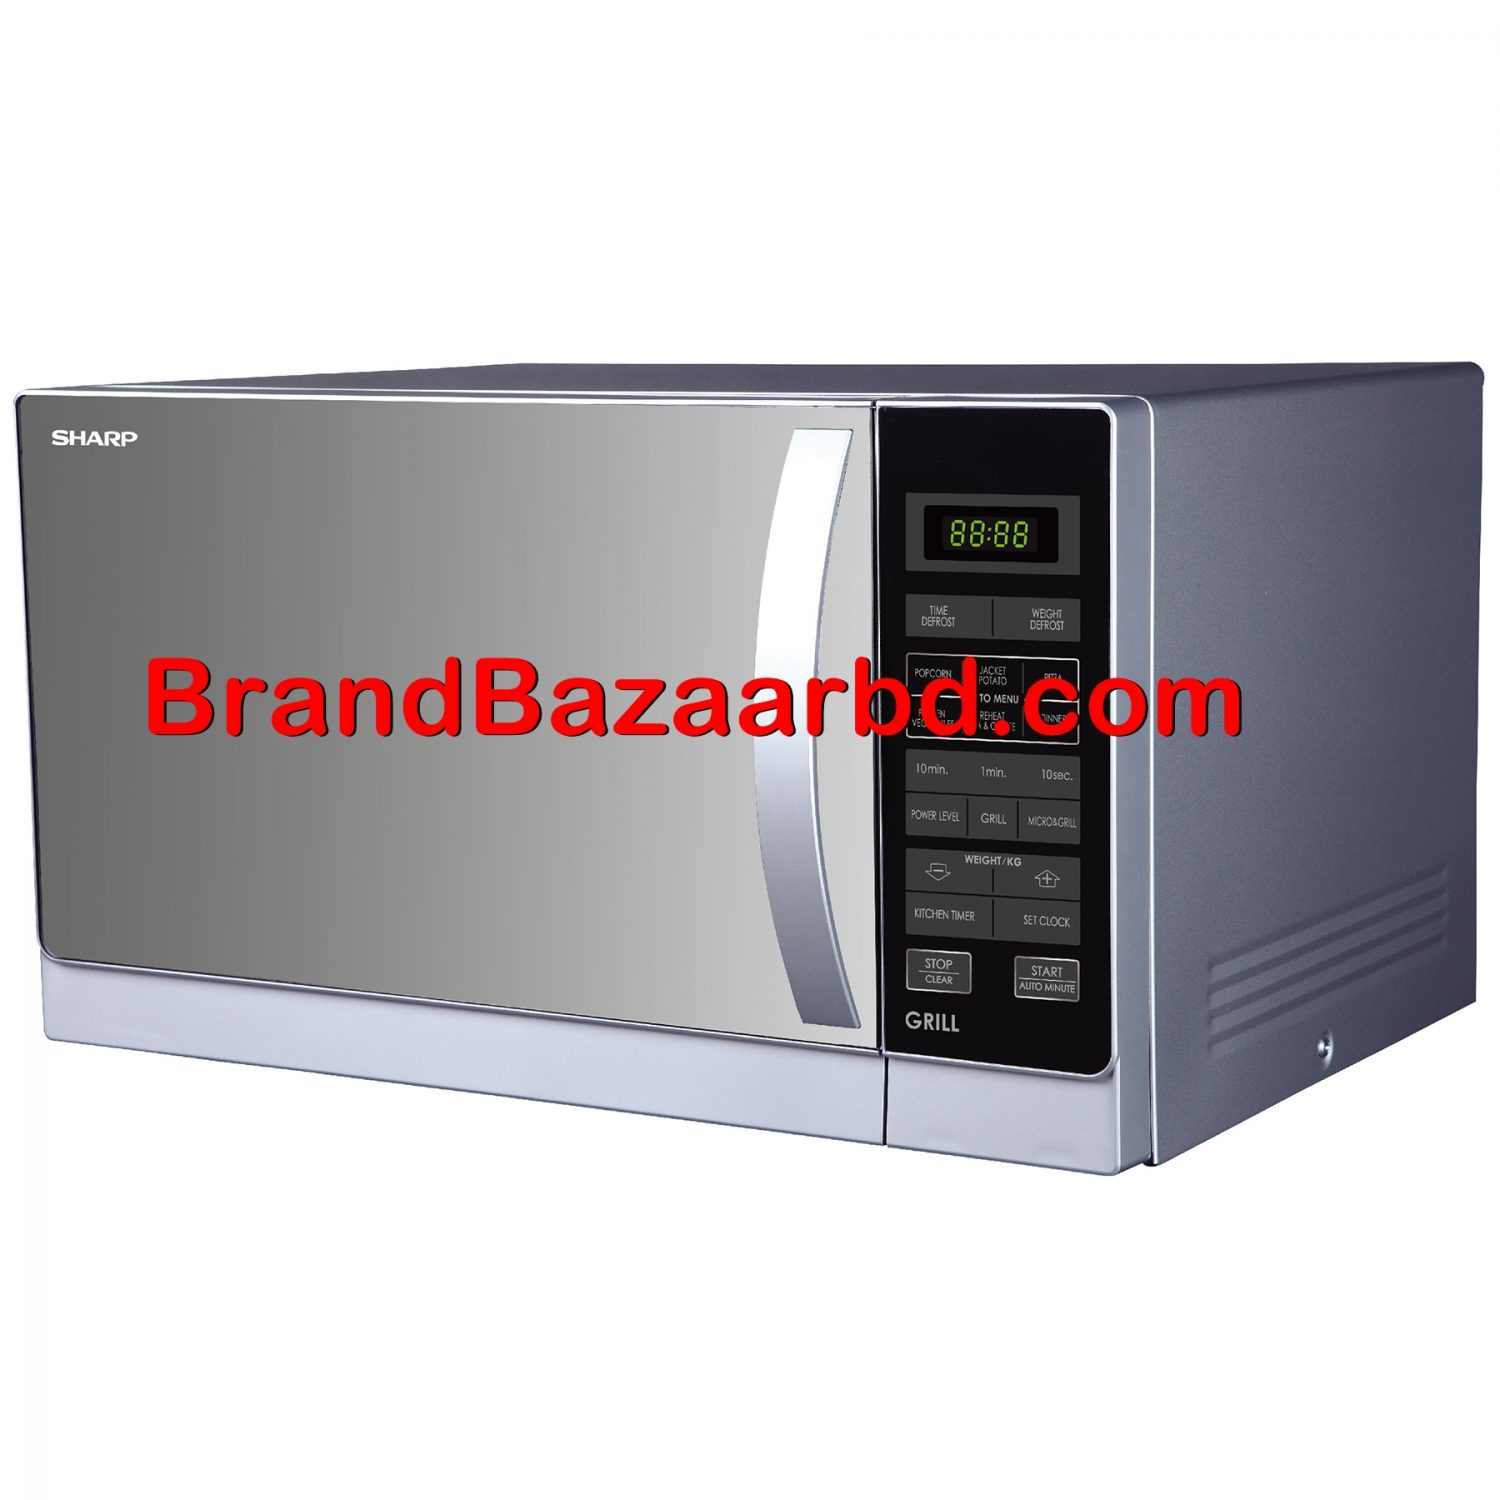 Sharp Microwave Oven Price in Bangladesh - Sharp R-72A1(SM)V 25-Liter